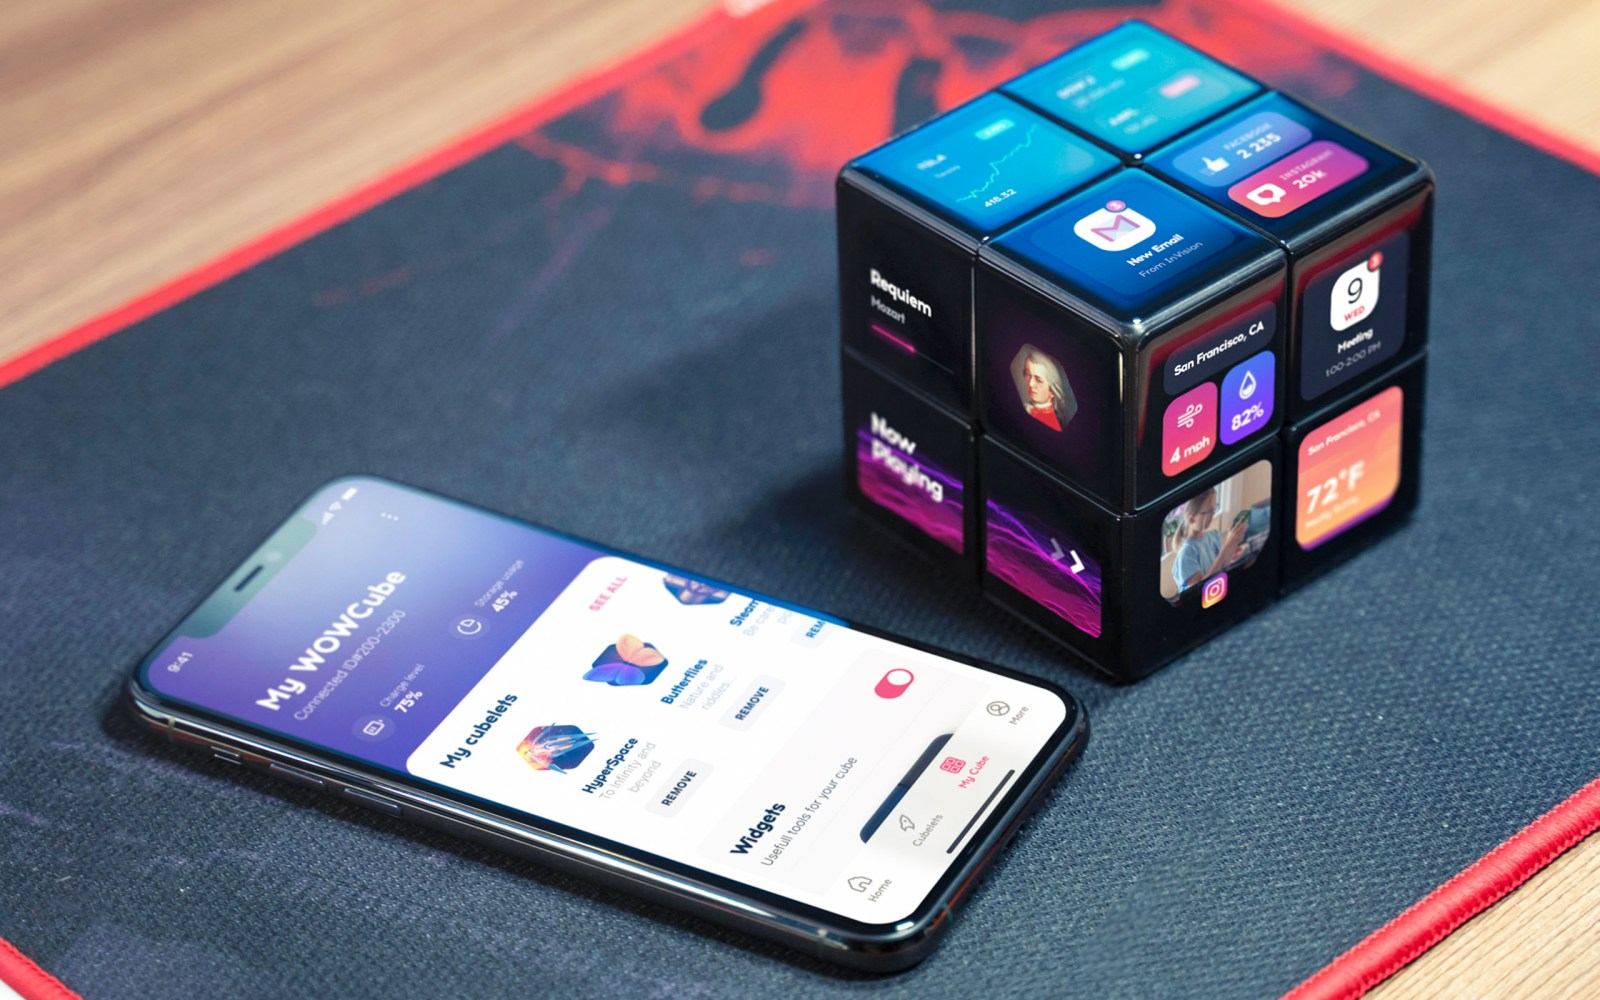 WOWCube Entertainment System is the Rubik's Cube of the future